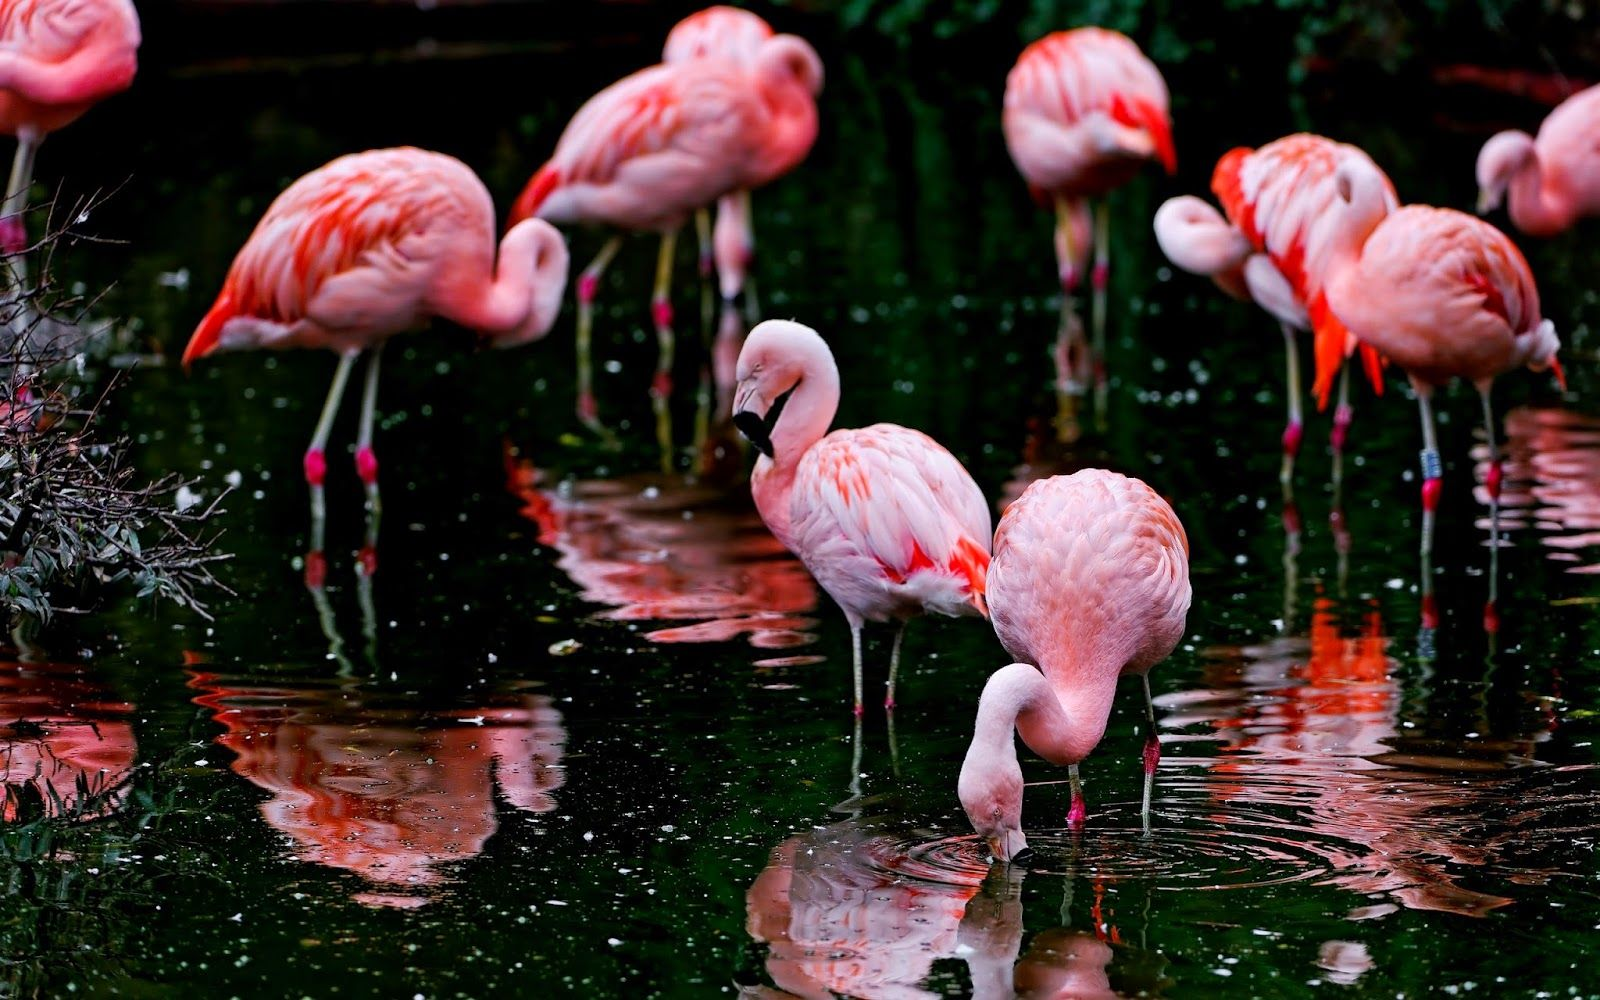 Background flamingo flamingos iphone wallpaper wallpaper - Explore Flamingo Wallpaper Hd Wallpaper And More